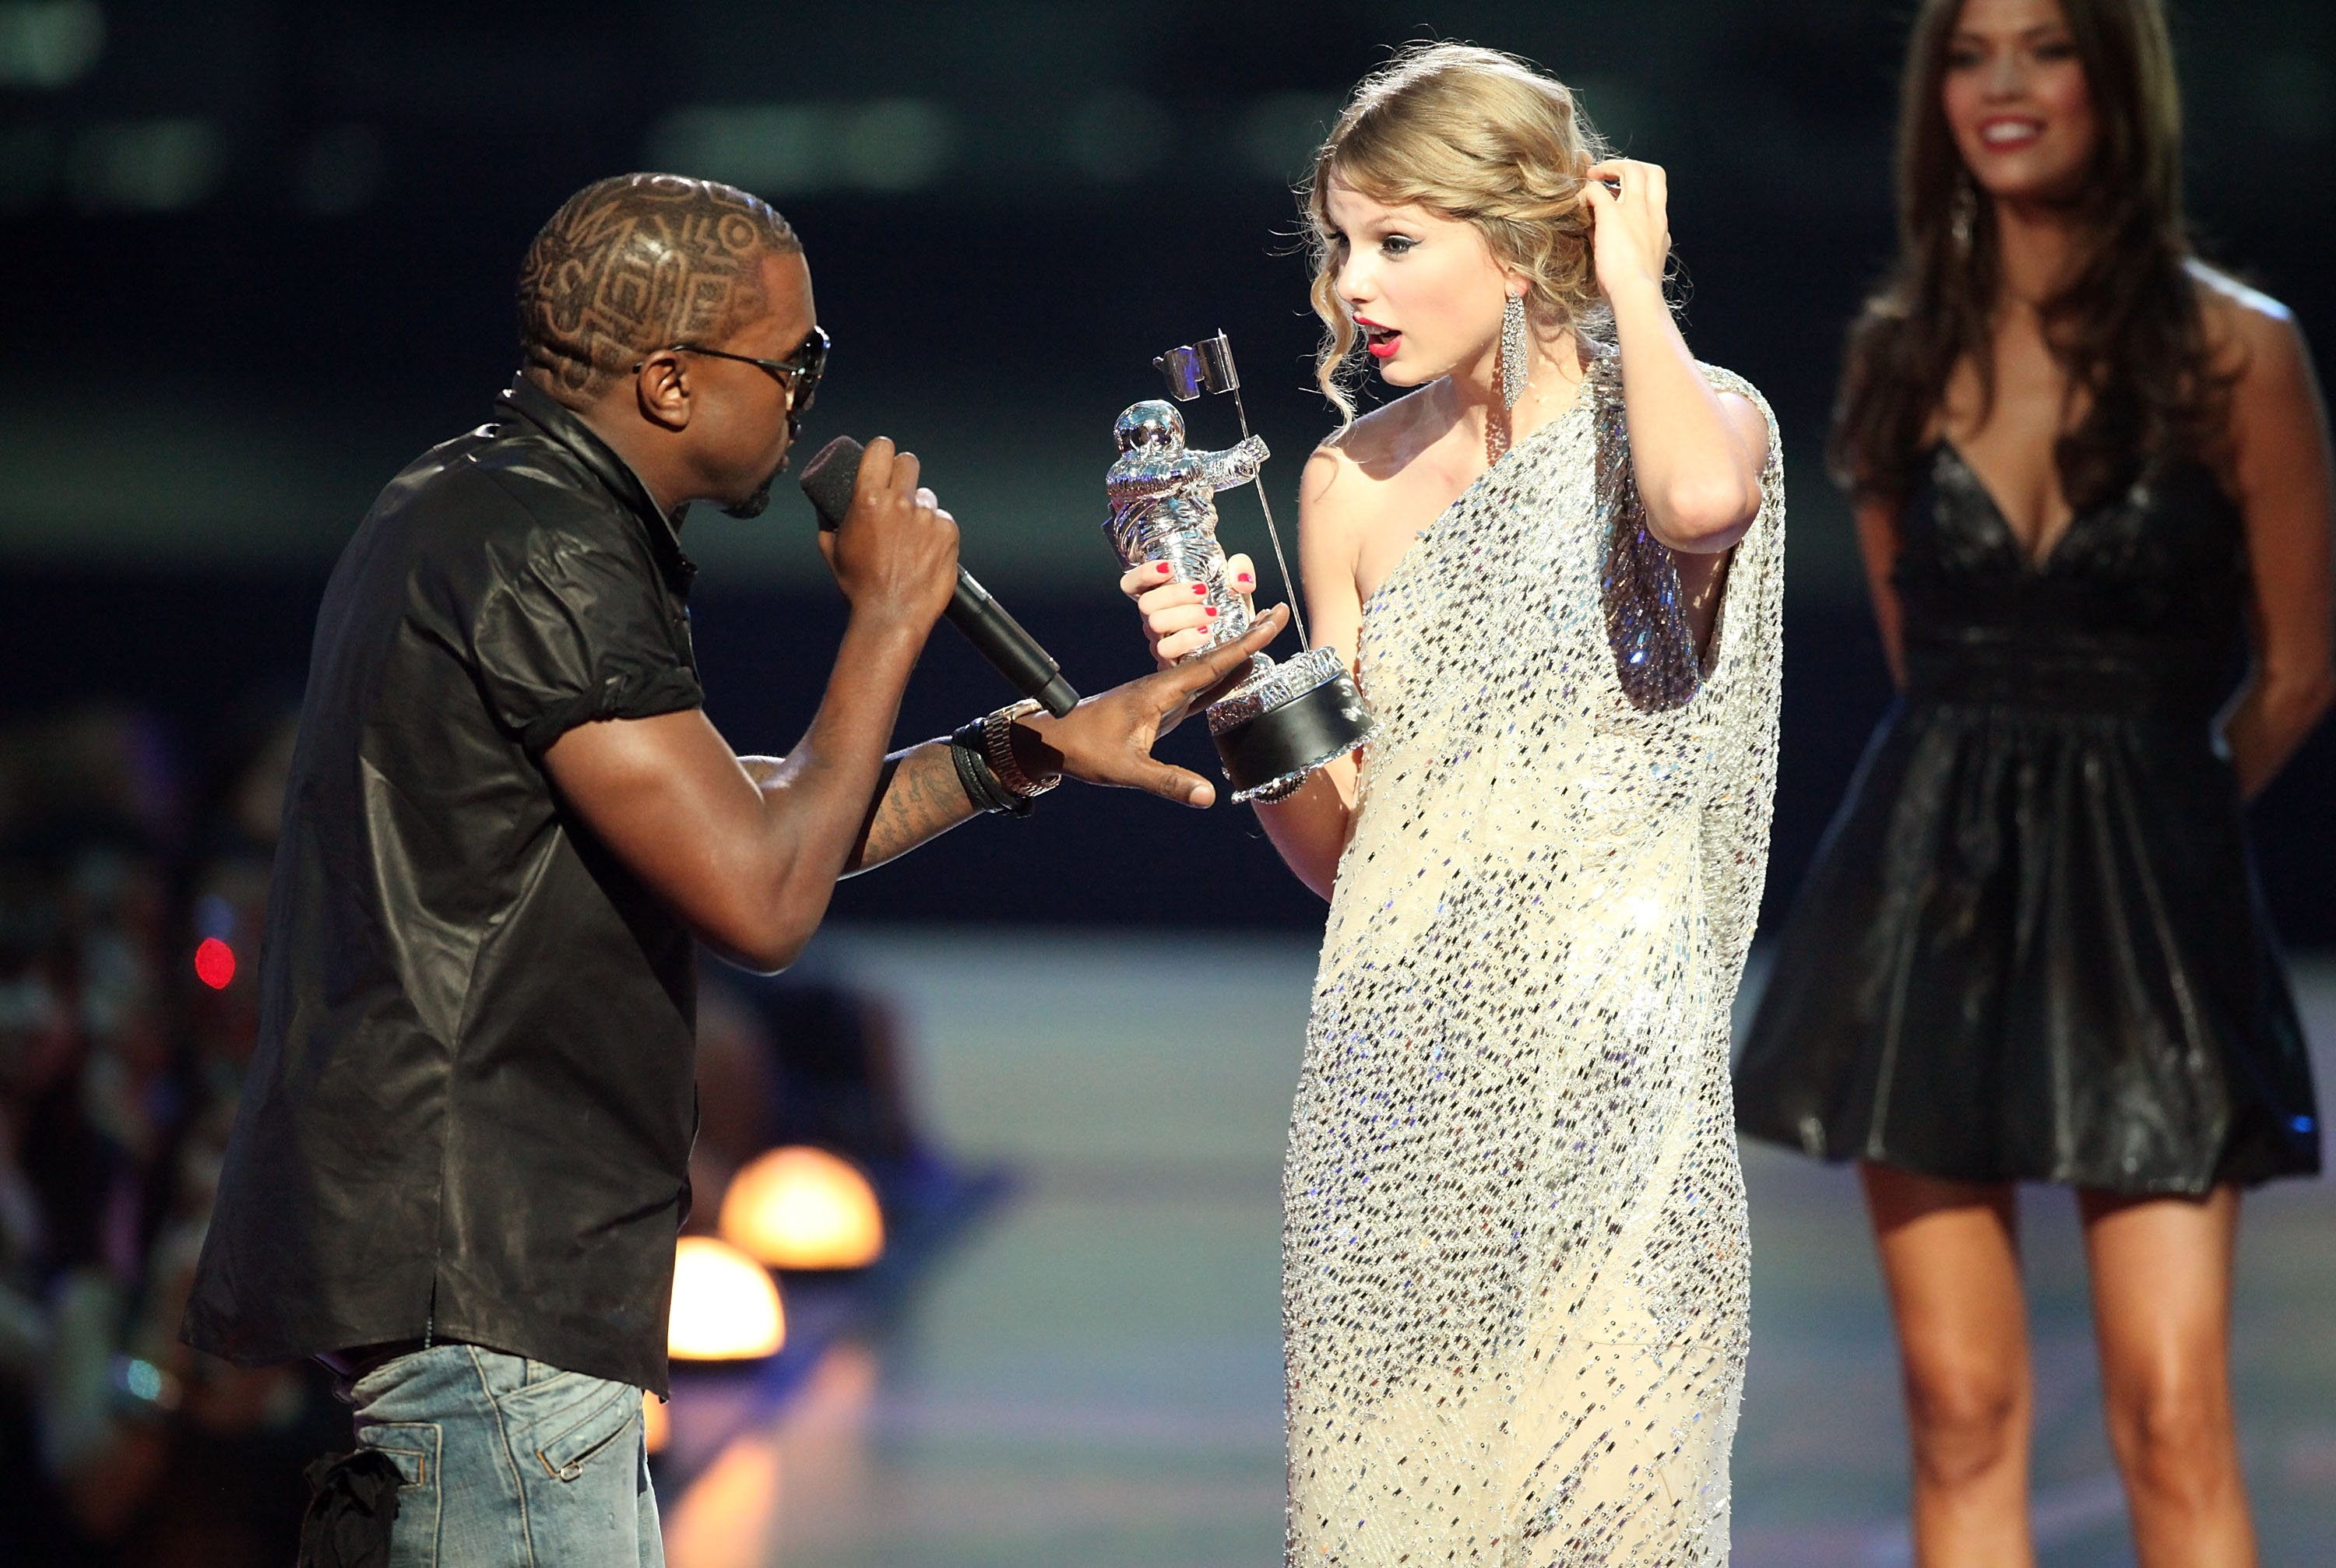 """Kanye West (L) jumps onstage after Taylor Swift (C) won the """"Best Female Video"""" award during the 2009 MTV Video Music Awards at Radio City Music Hall on September 13, 2009, in New York City. 